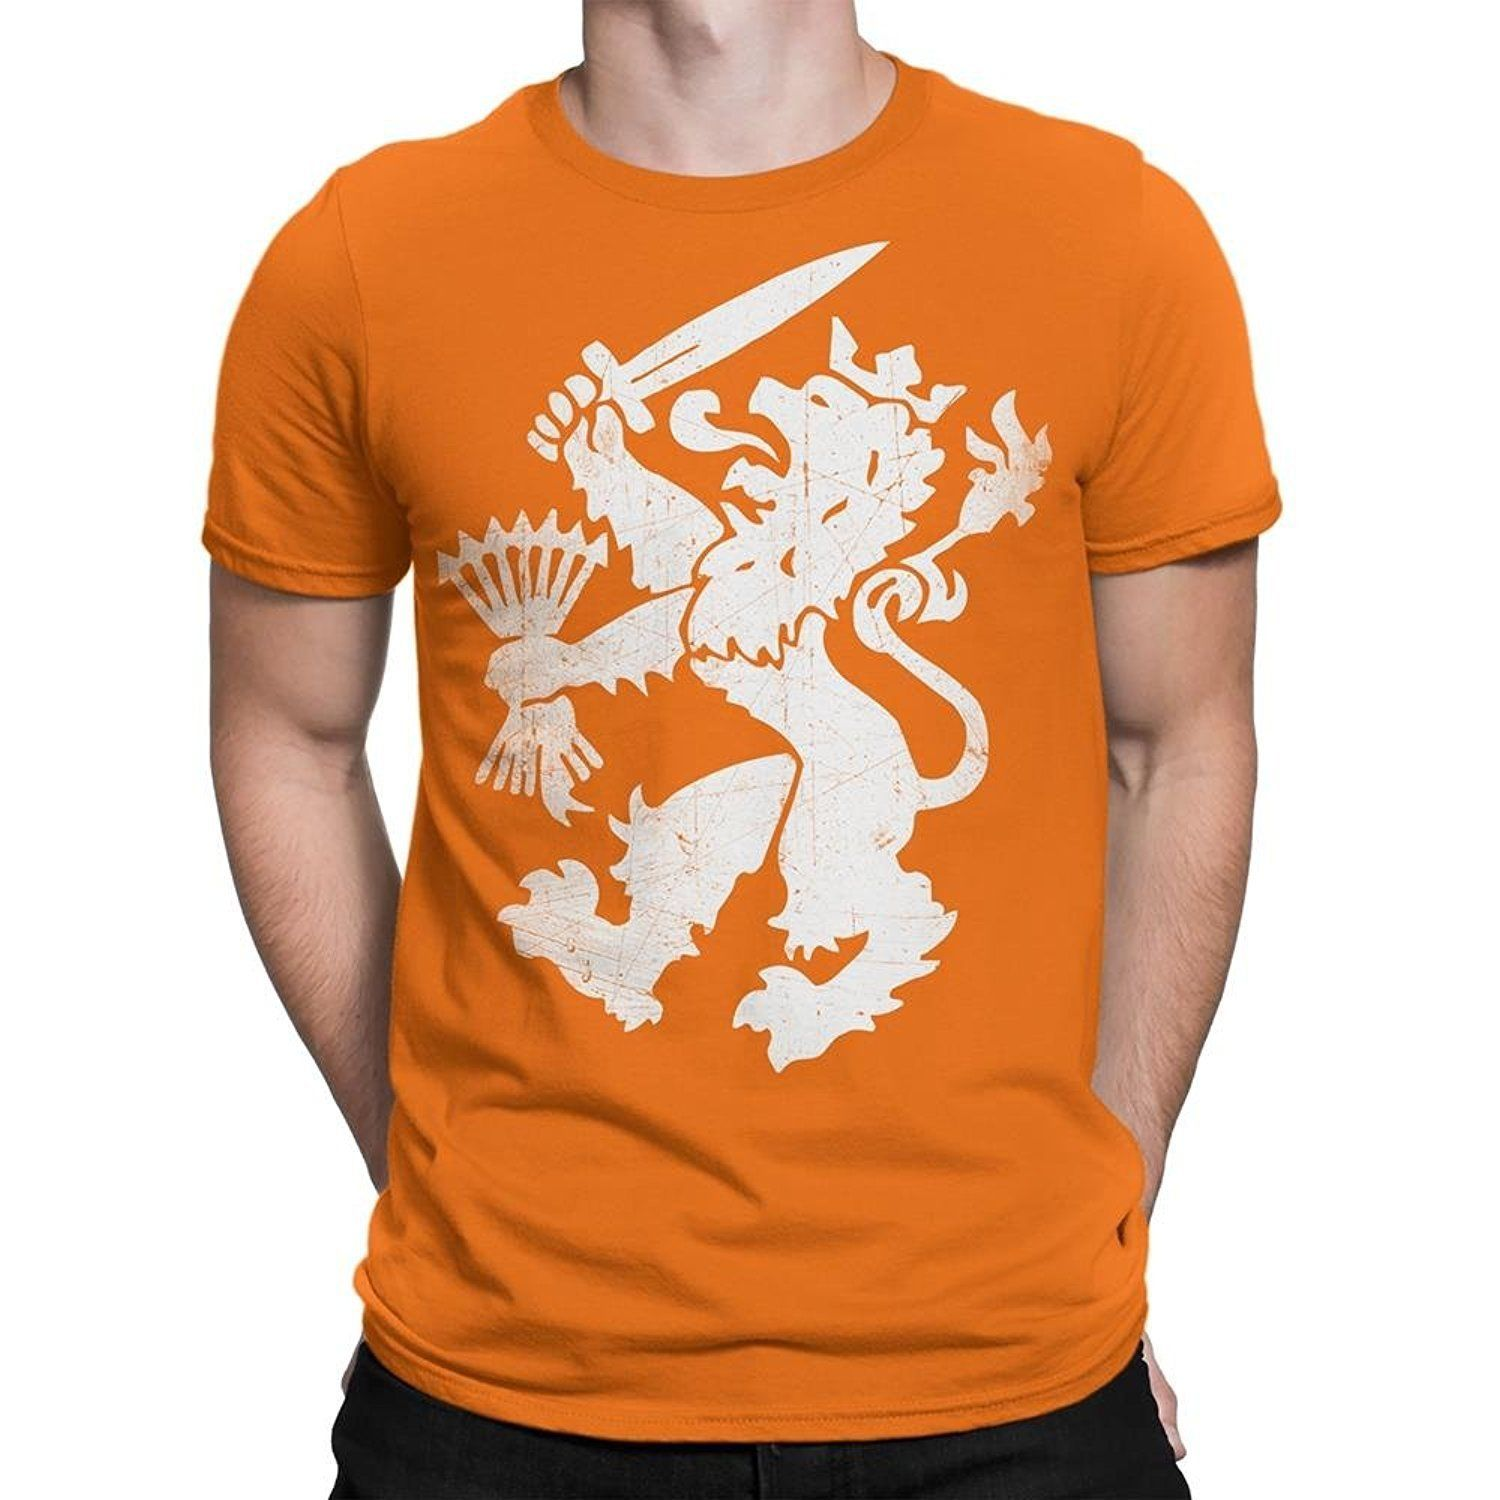 Nyc Factory Netherlands T-Shirt Dutch Oranje Lion Men Tee netherlands-tee-men-b Free shipping Tops Fashion Classic Unique 2